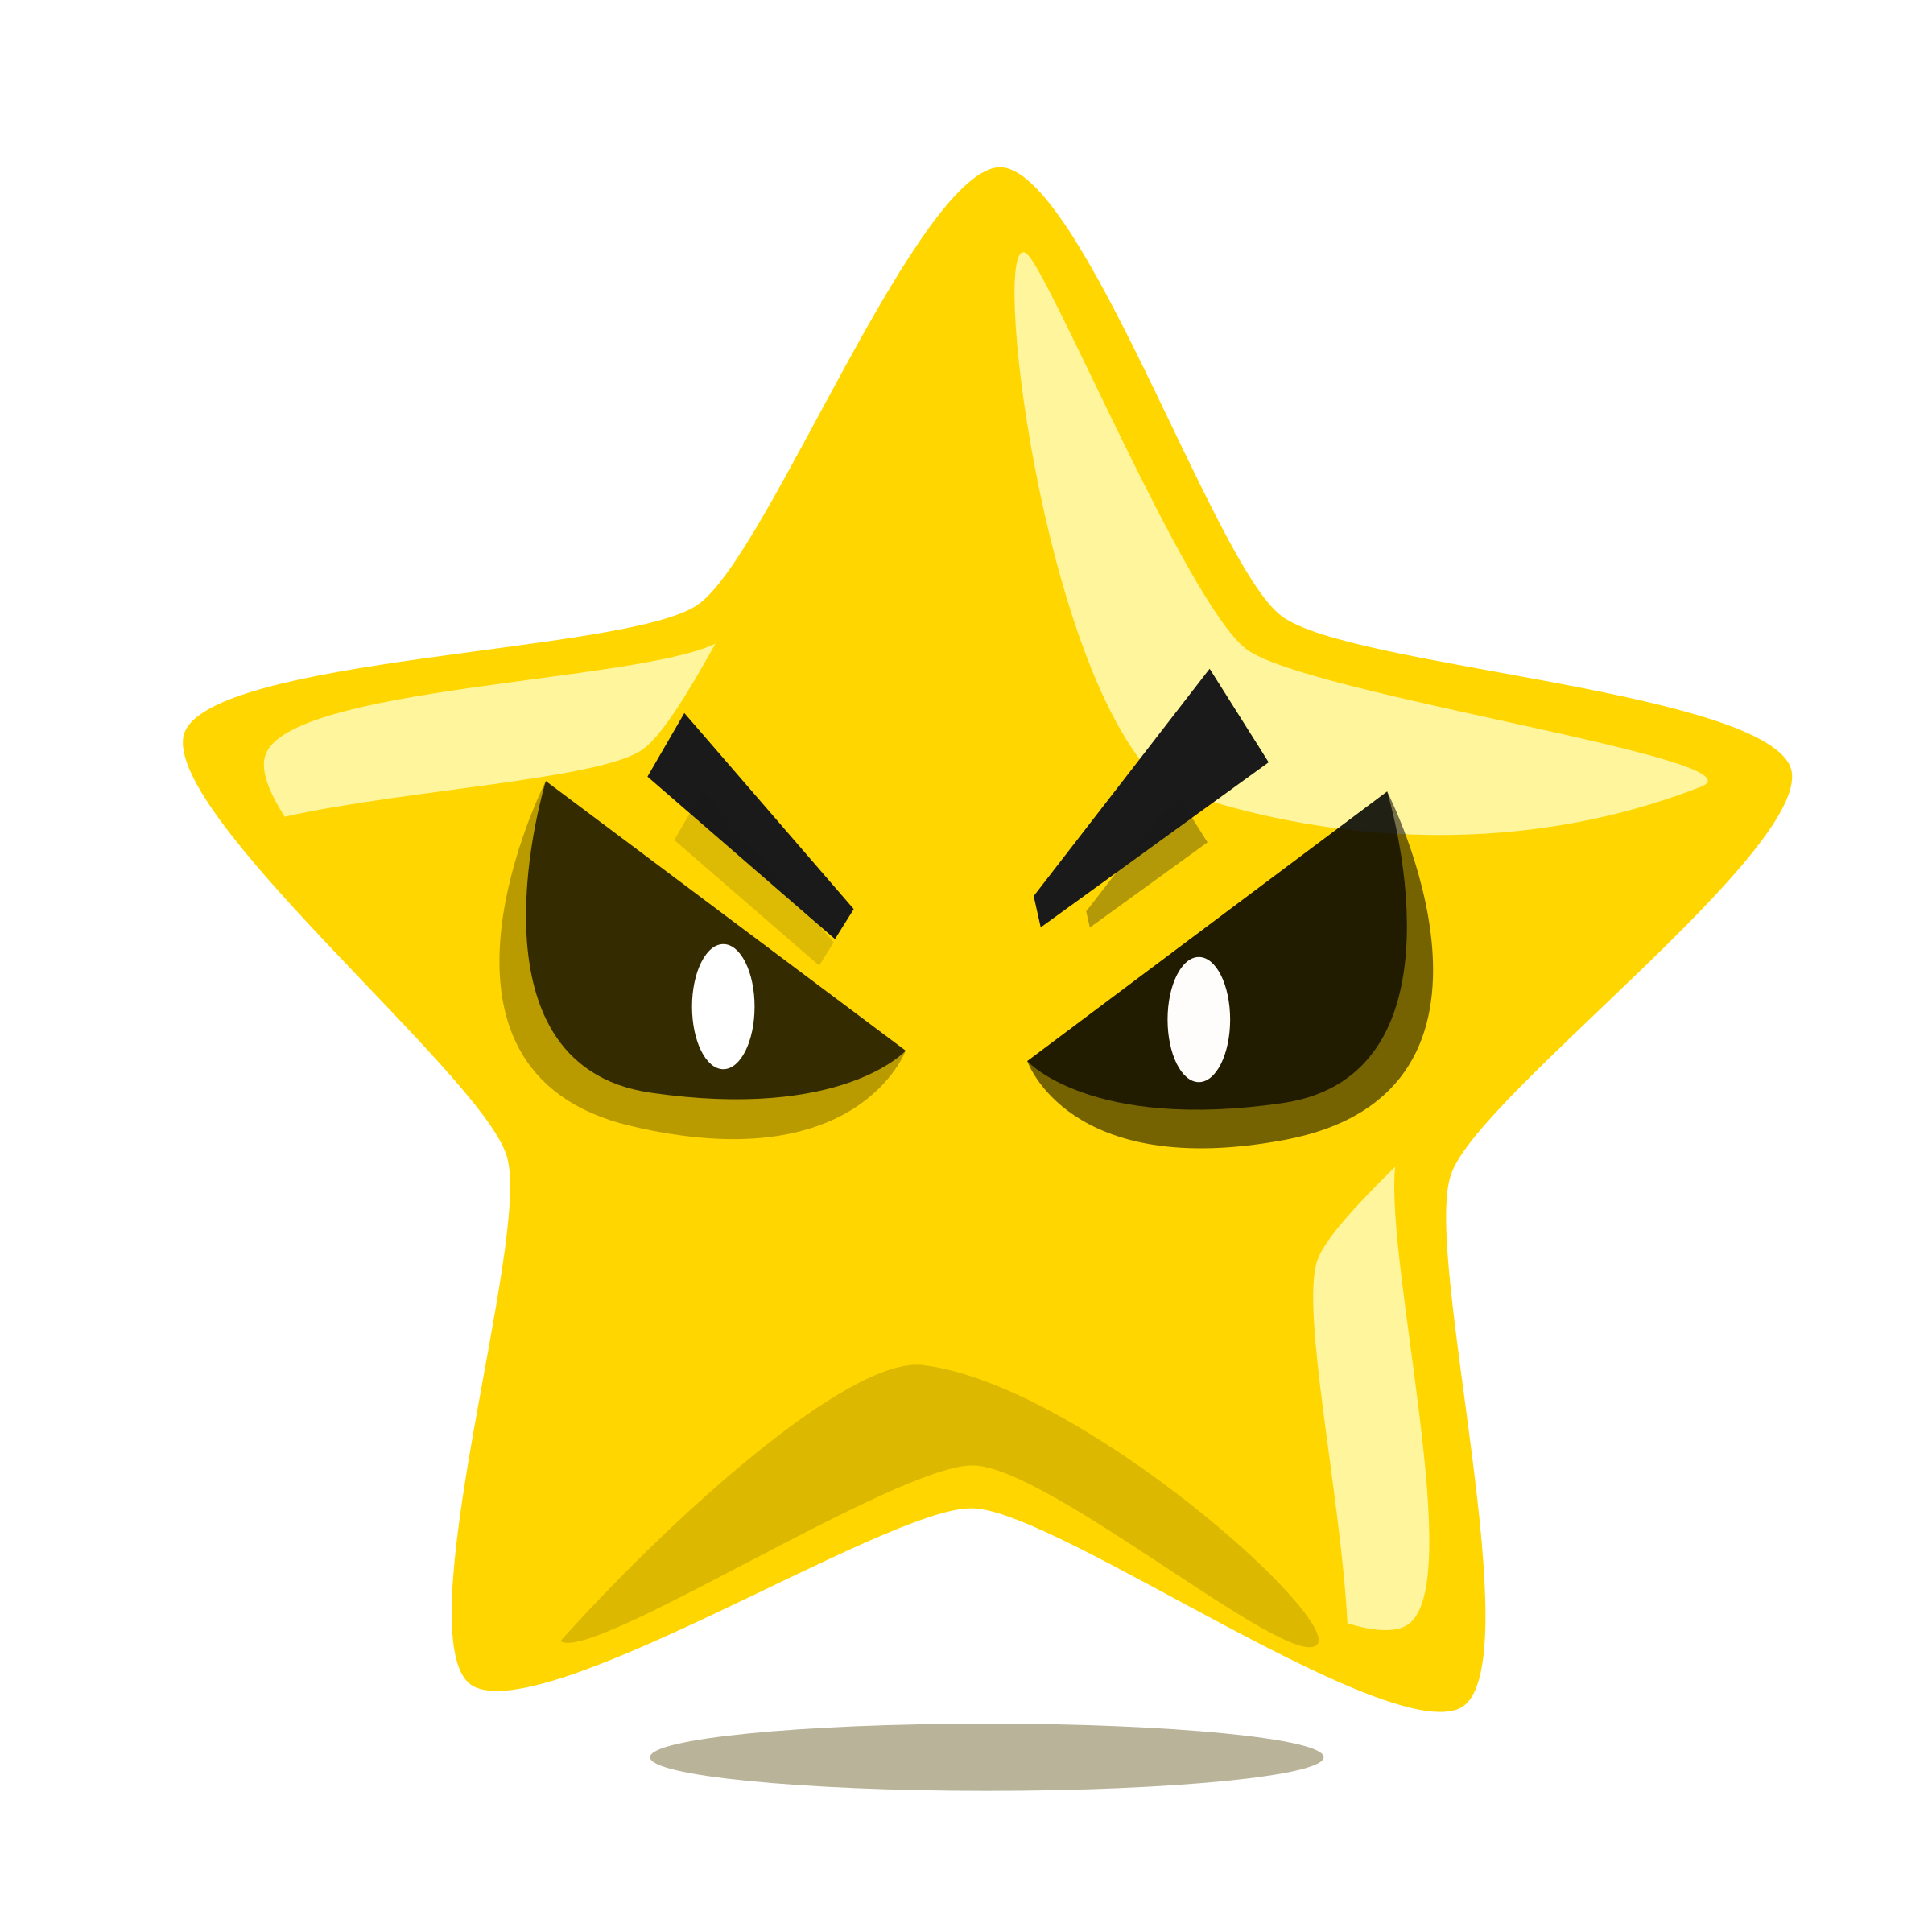 Cute clipart star clip art royalty free library Clipart - Evil Star character cute clip art royalty free library